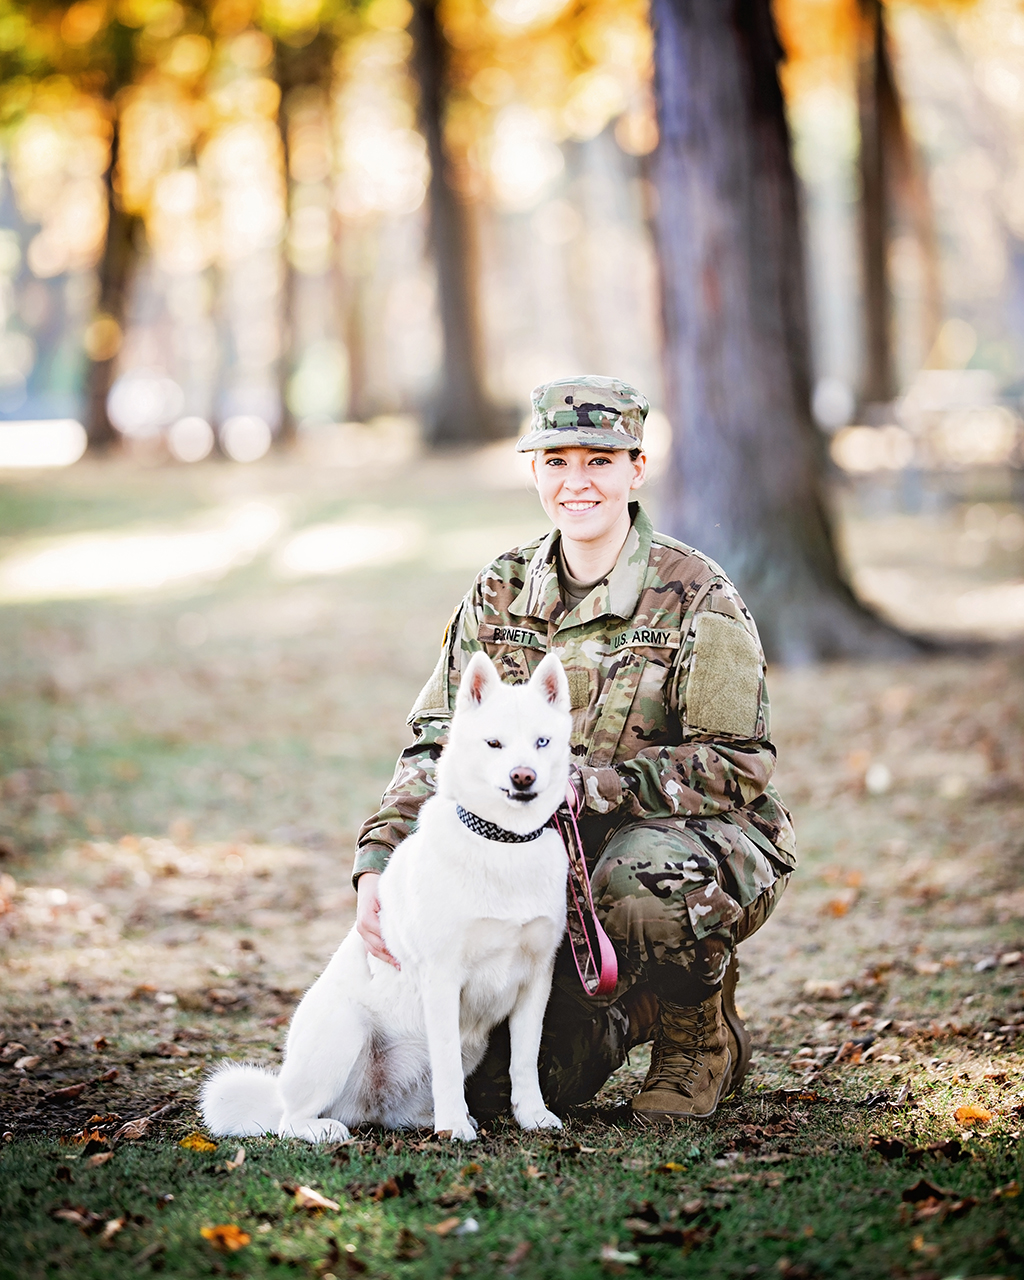 Michigan Senior Portraits - High School Senior Joining the Army who brought her Dog to the Session